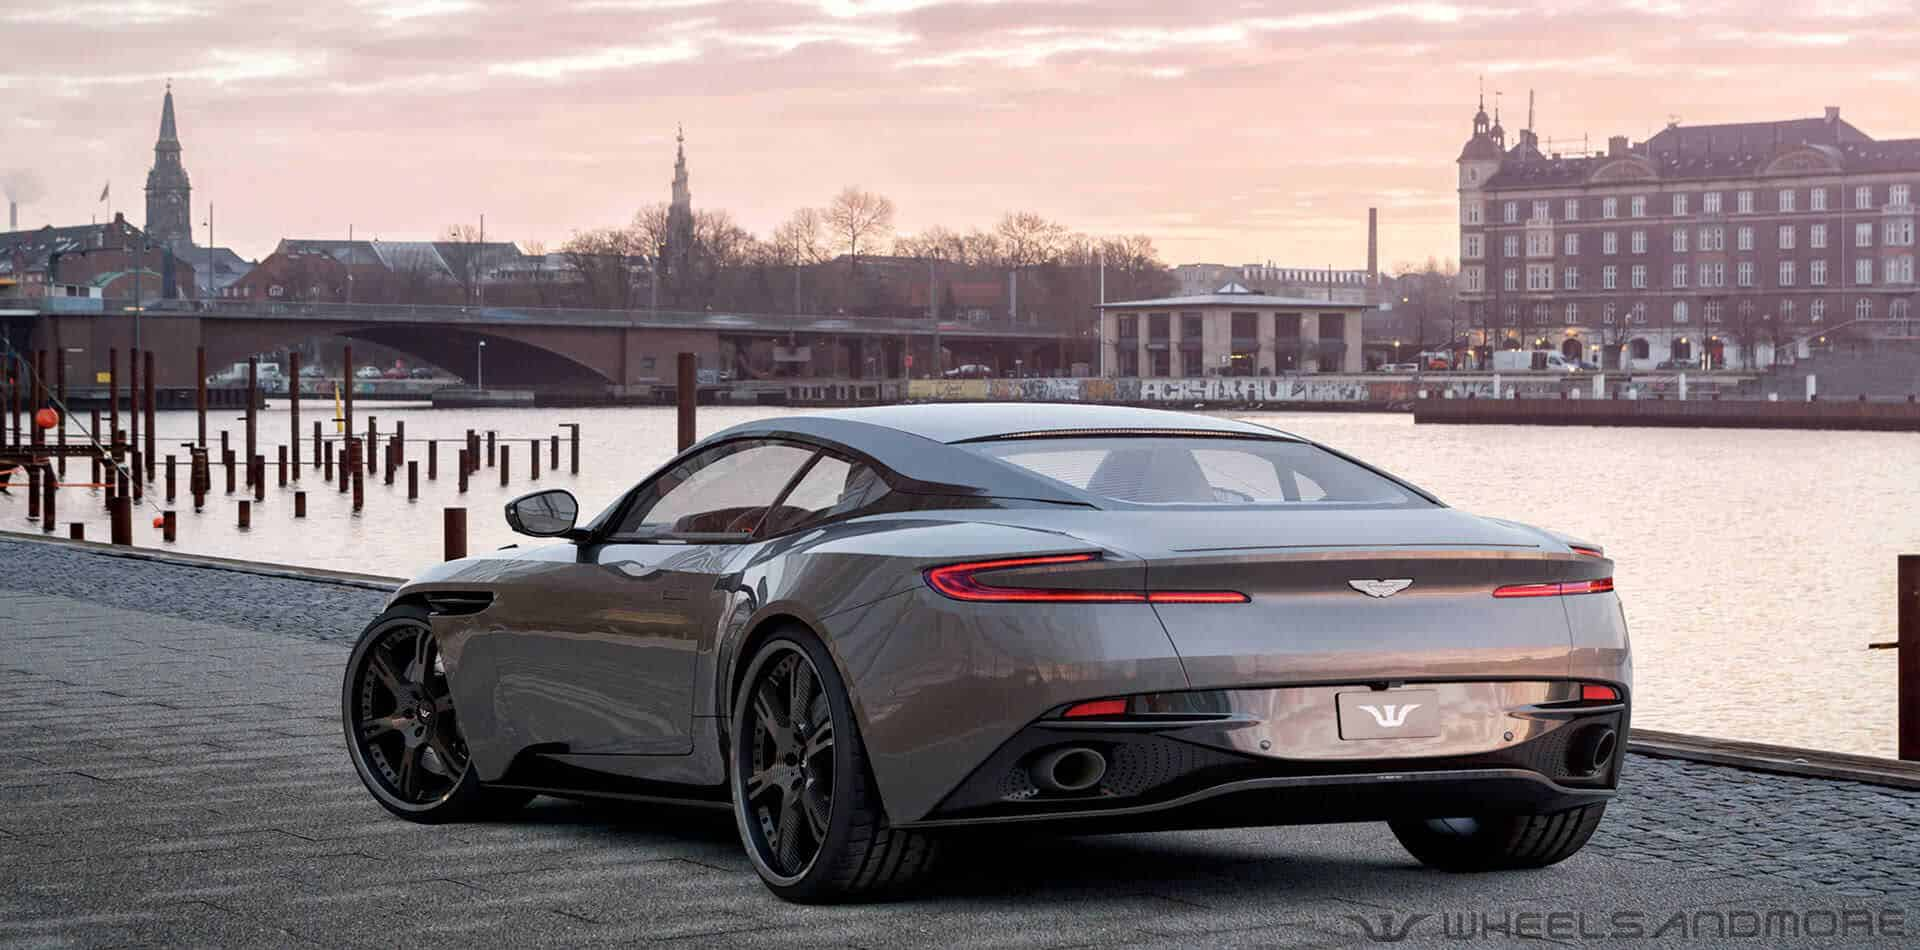 Aston Martin Db11 Tuning With Wheels And Exhaust By Wheelsandmore Wheelsandmore Tuning